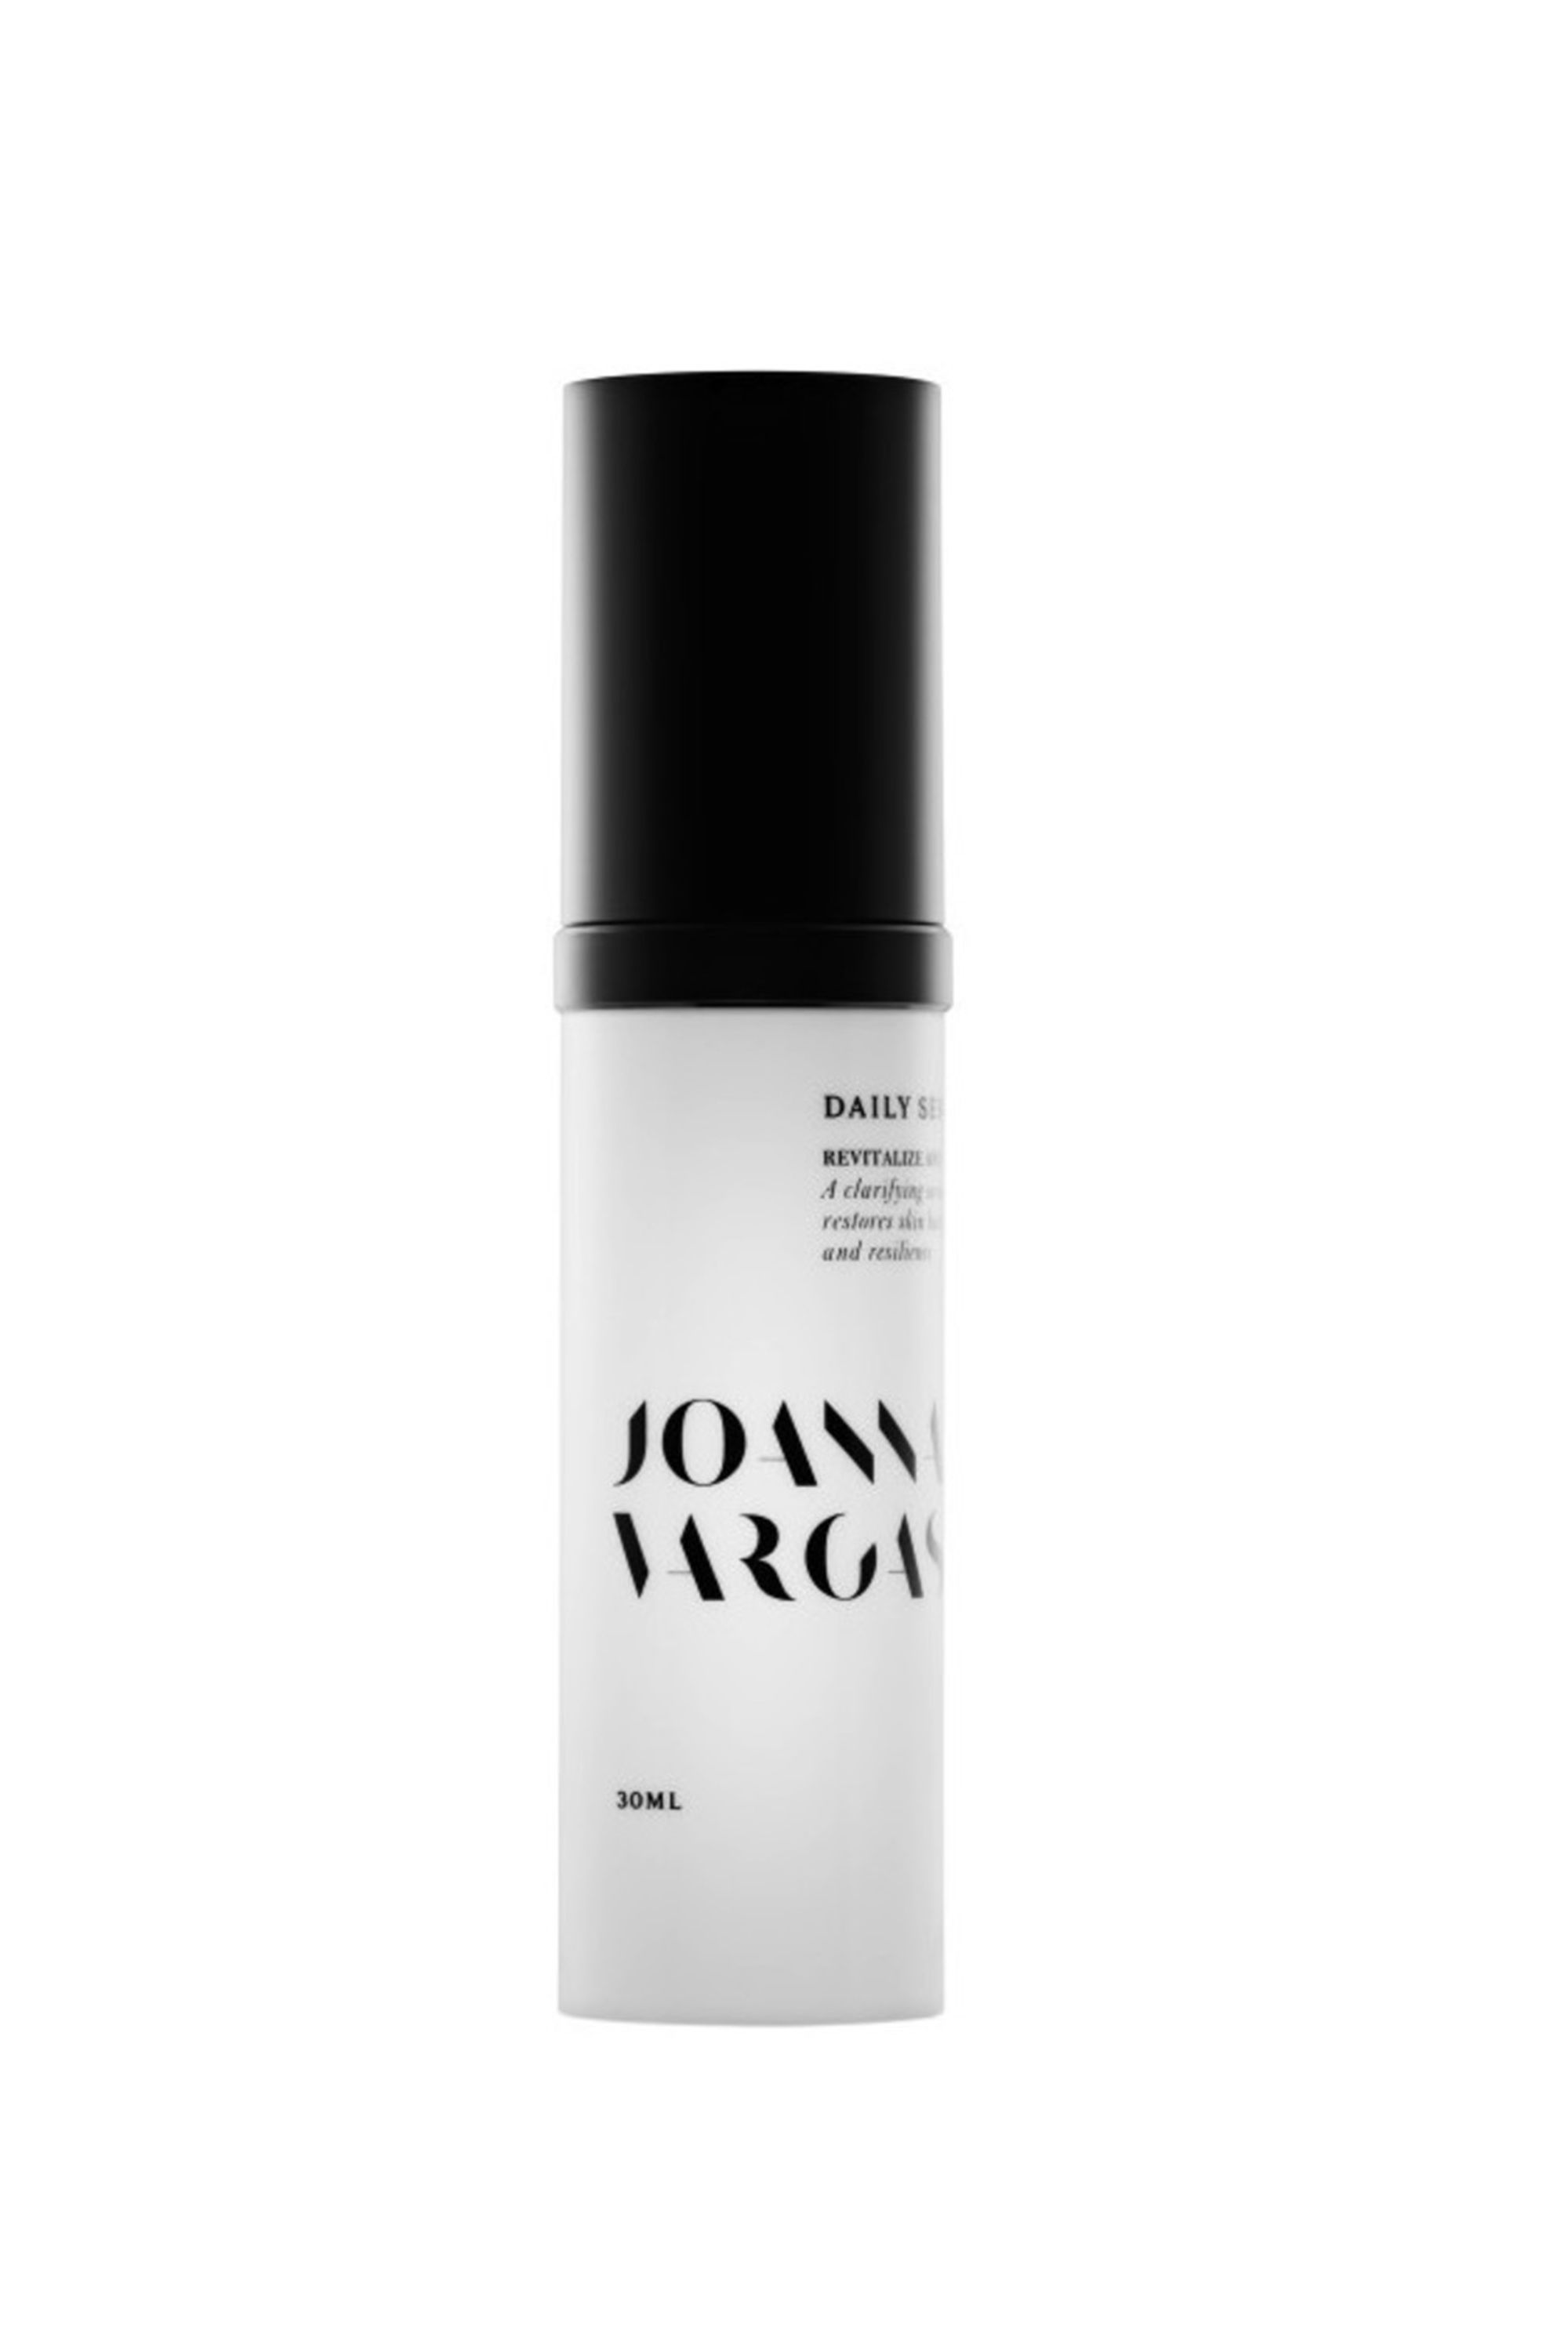 The Celebrity Favorite Daily Serum Joanna Vargas net-a-porter.com $85.00 SHOP NOW A favorite among celebrity dermatologist Vargas' clients like Dakota Johnson and Mindy Kaling, this serum is infused with vitamins A, C, E, and F to even natural skin tone and minimize the appearance of pores.